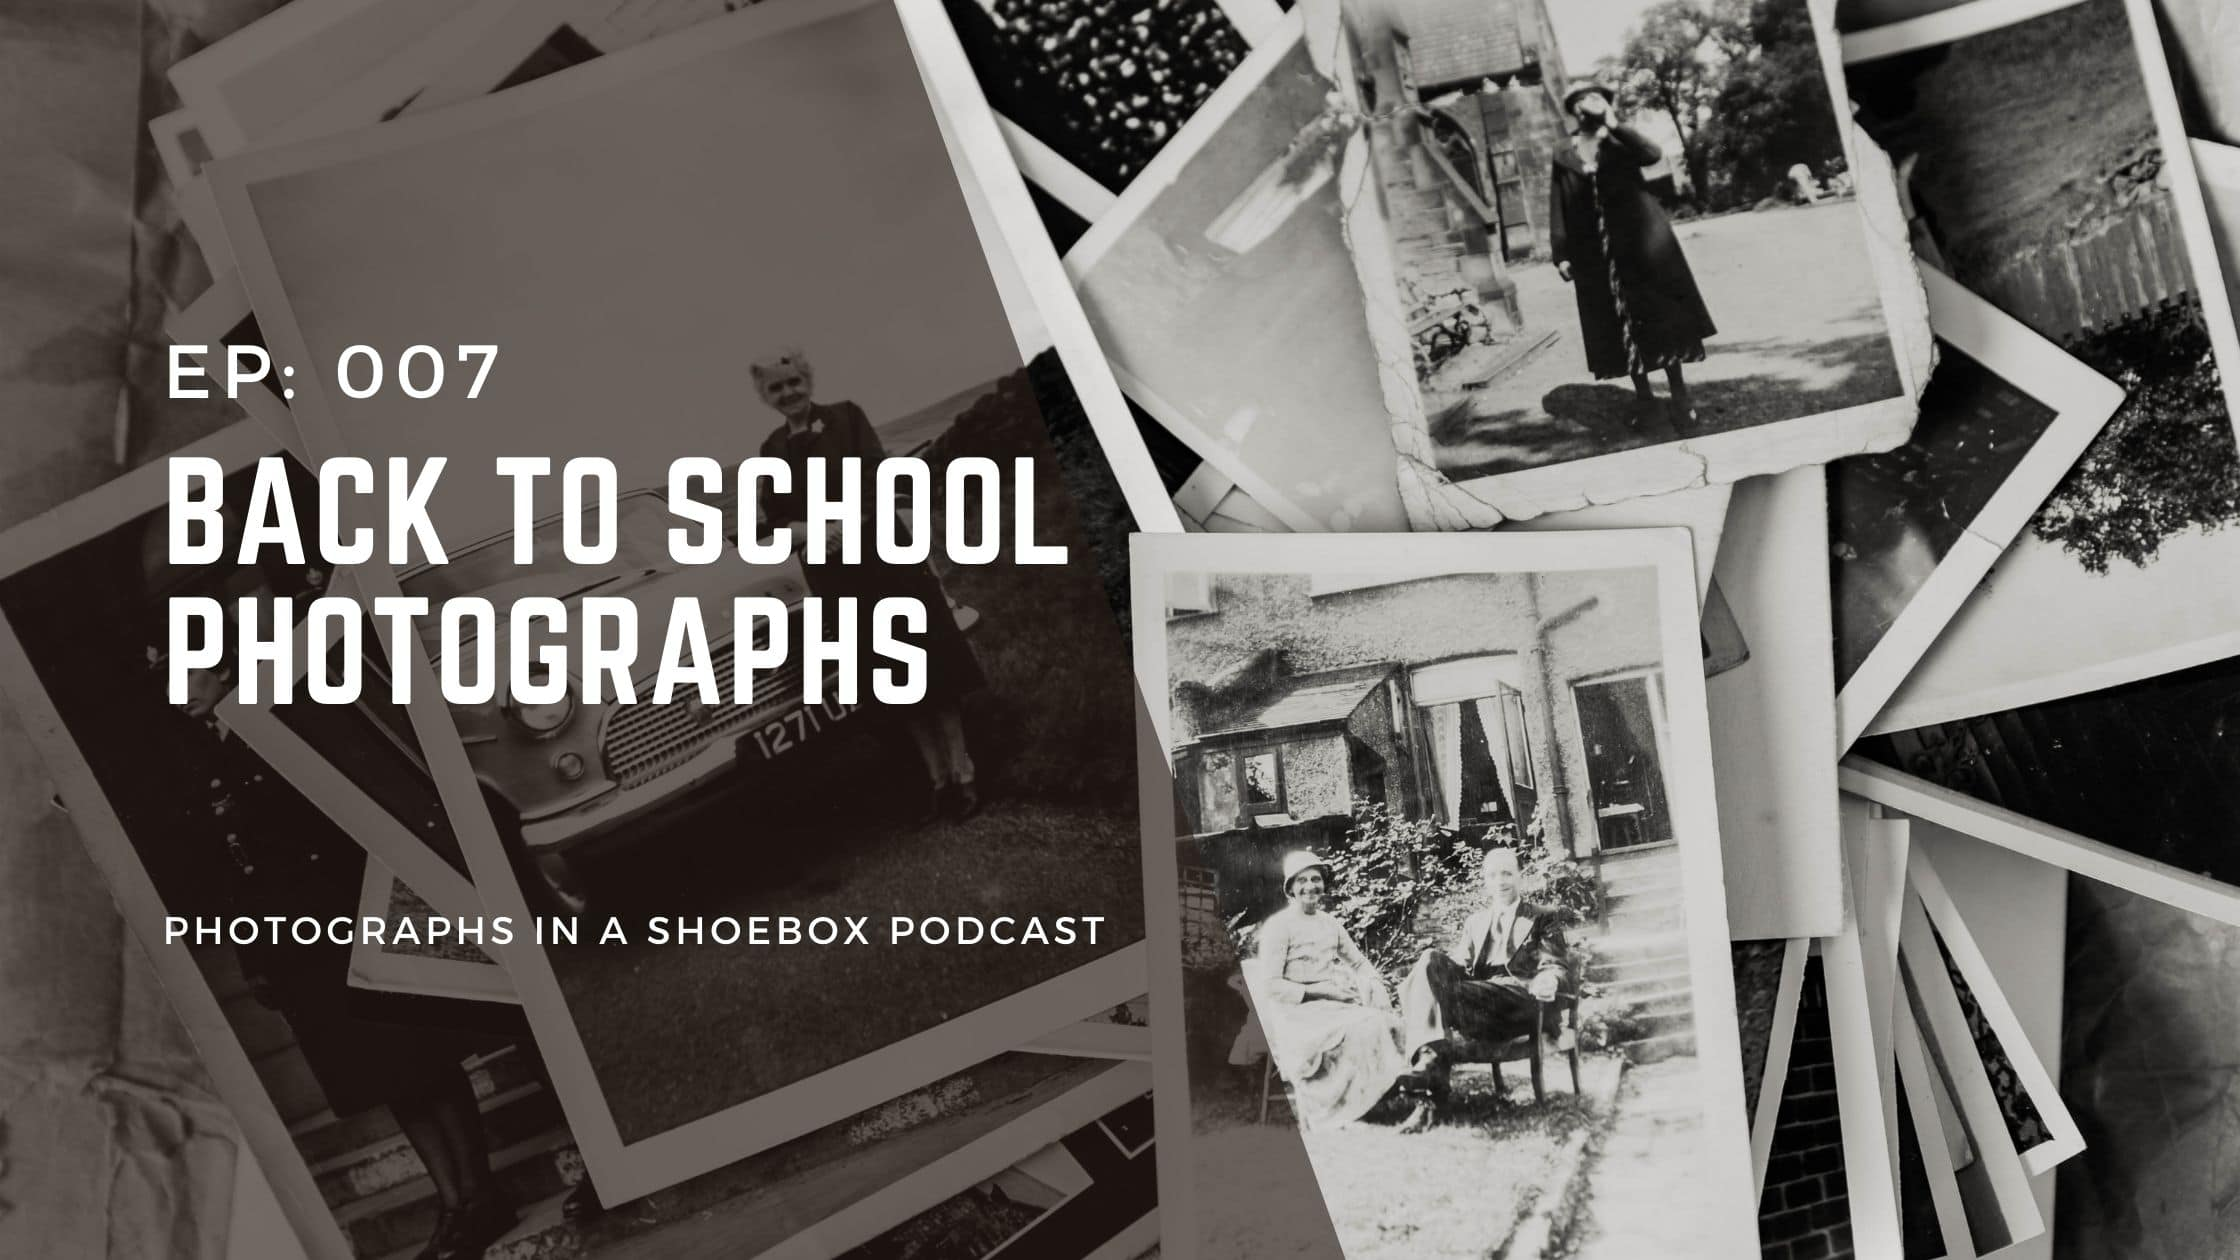 Podcast episode art work - back to school photos